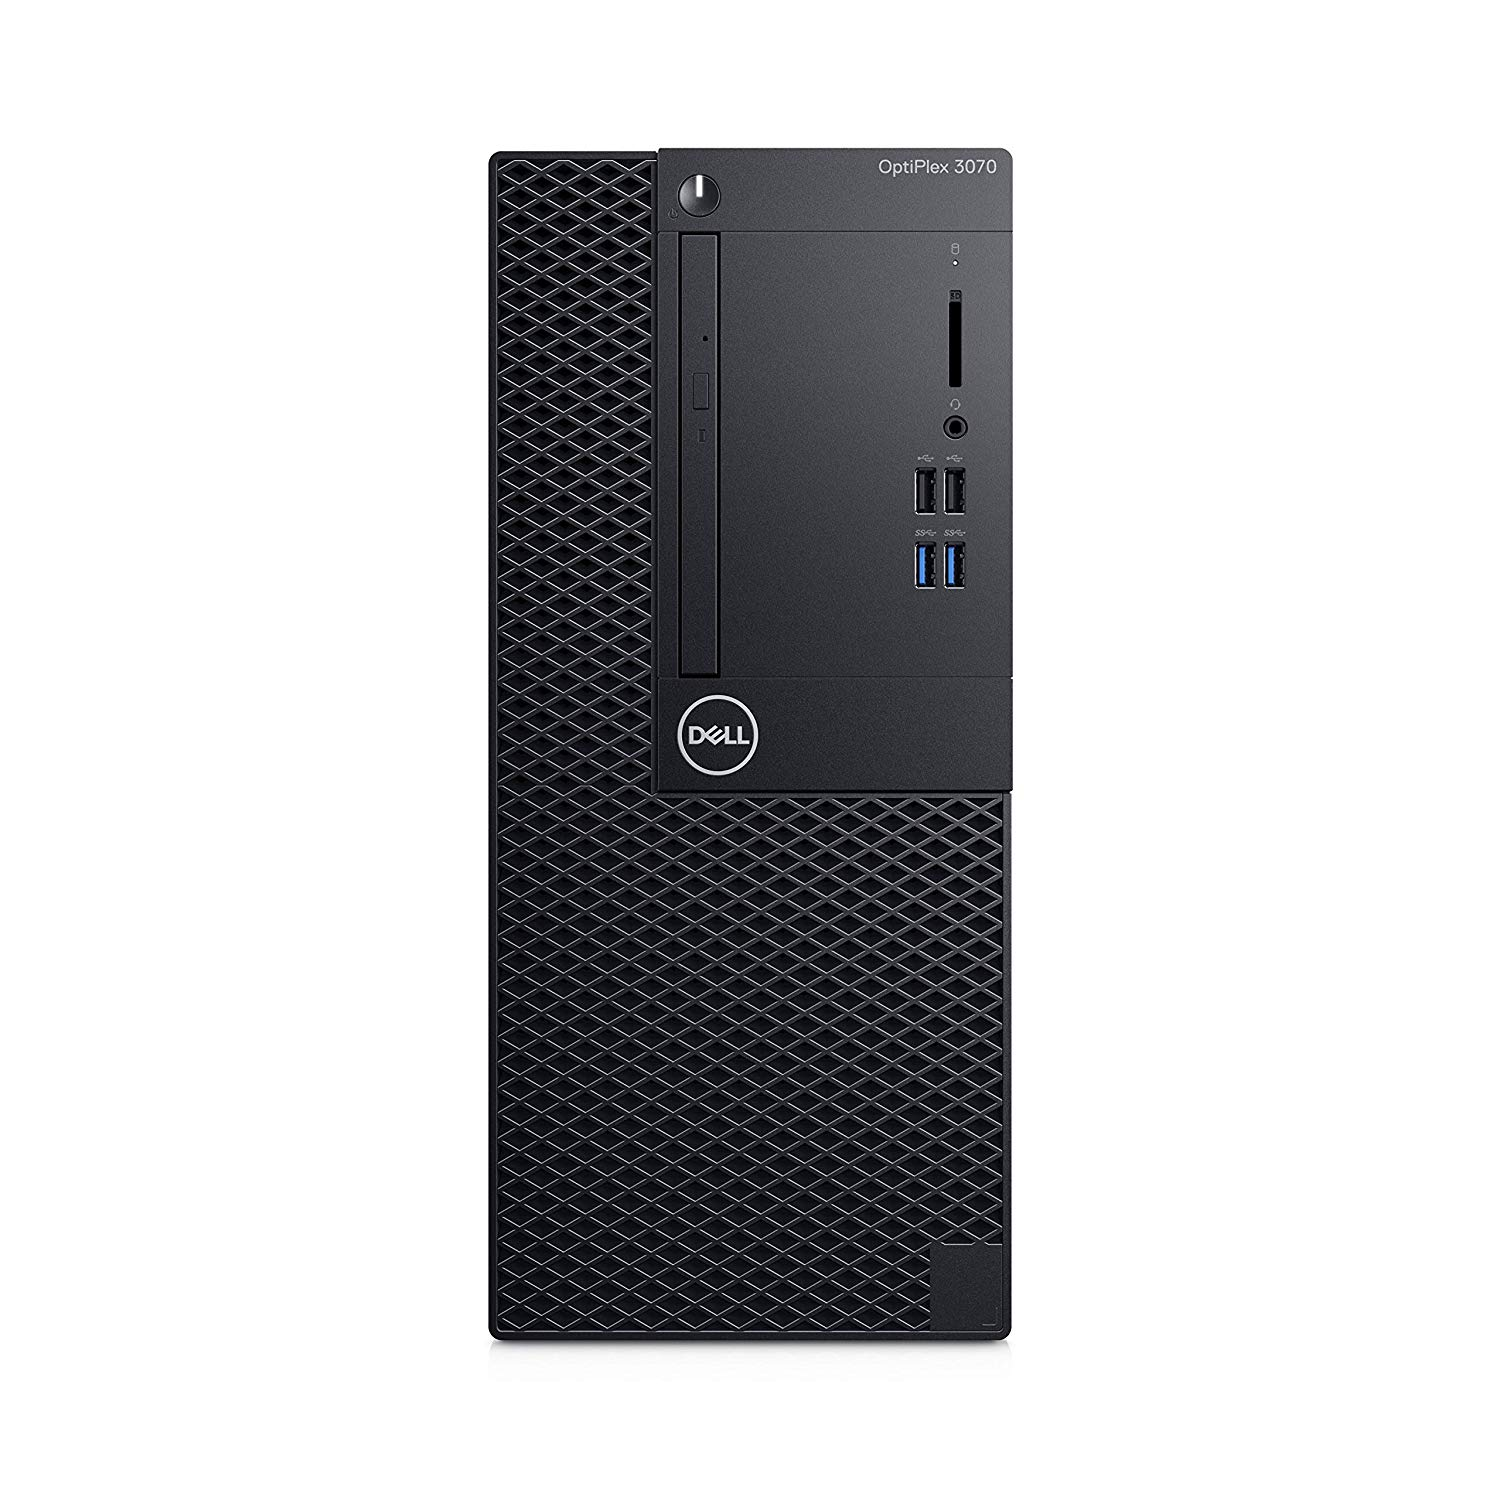 Opti 3070 i5 8GB 1TB HDD Mini Tower PC